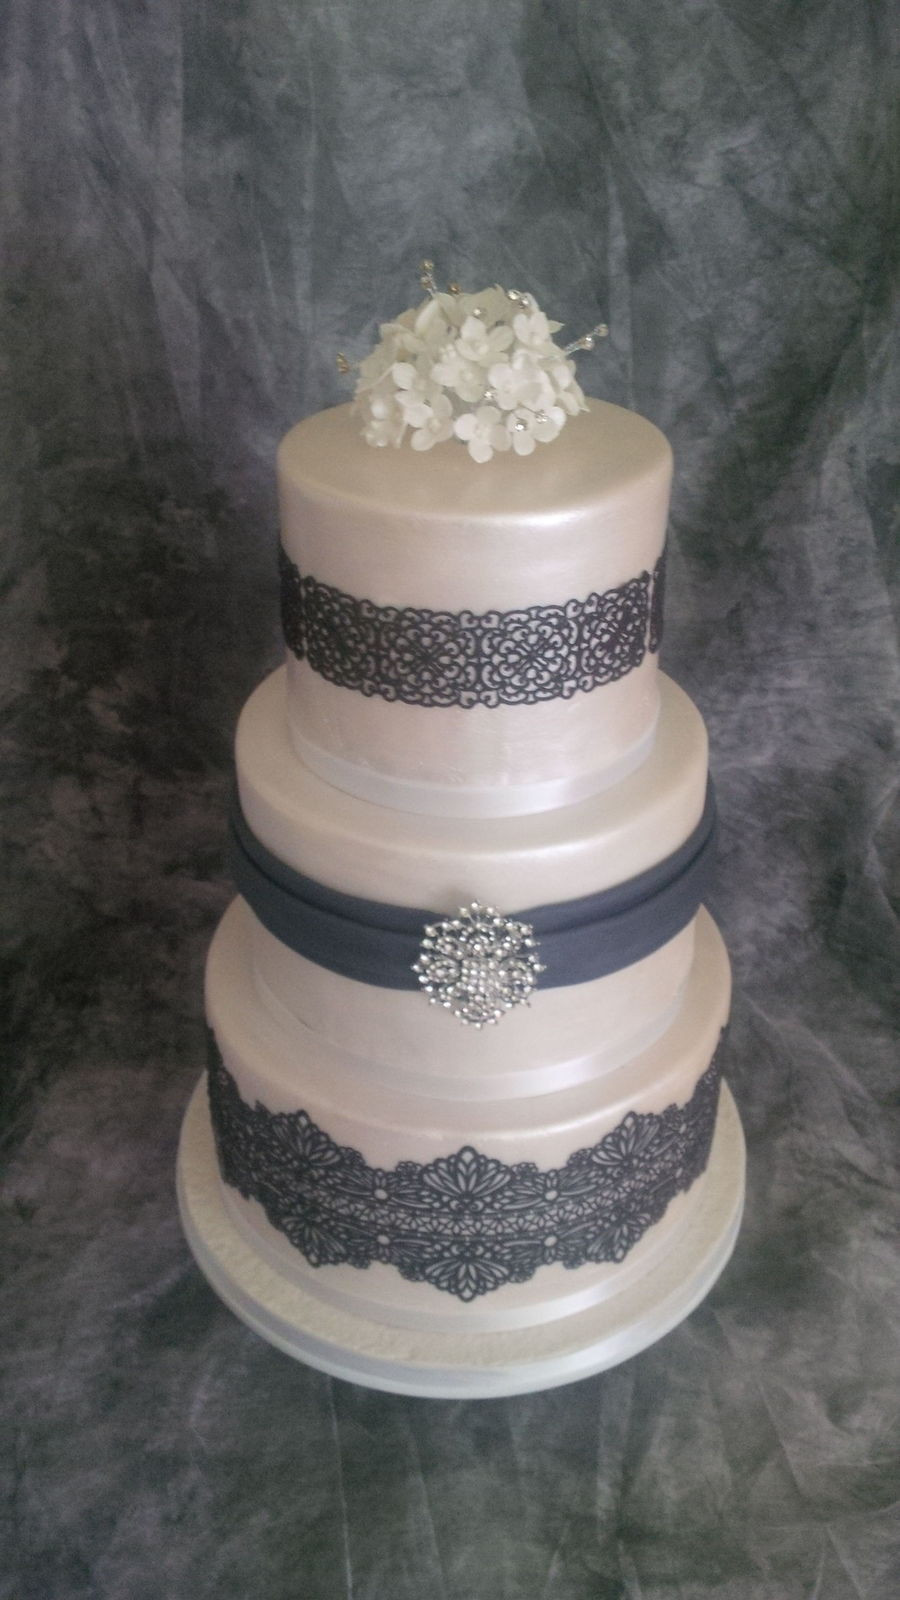 Edible Lace For Wedding Cakes  Three Tier Wedding Cake With Edible Lace CakeCentral